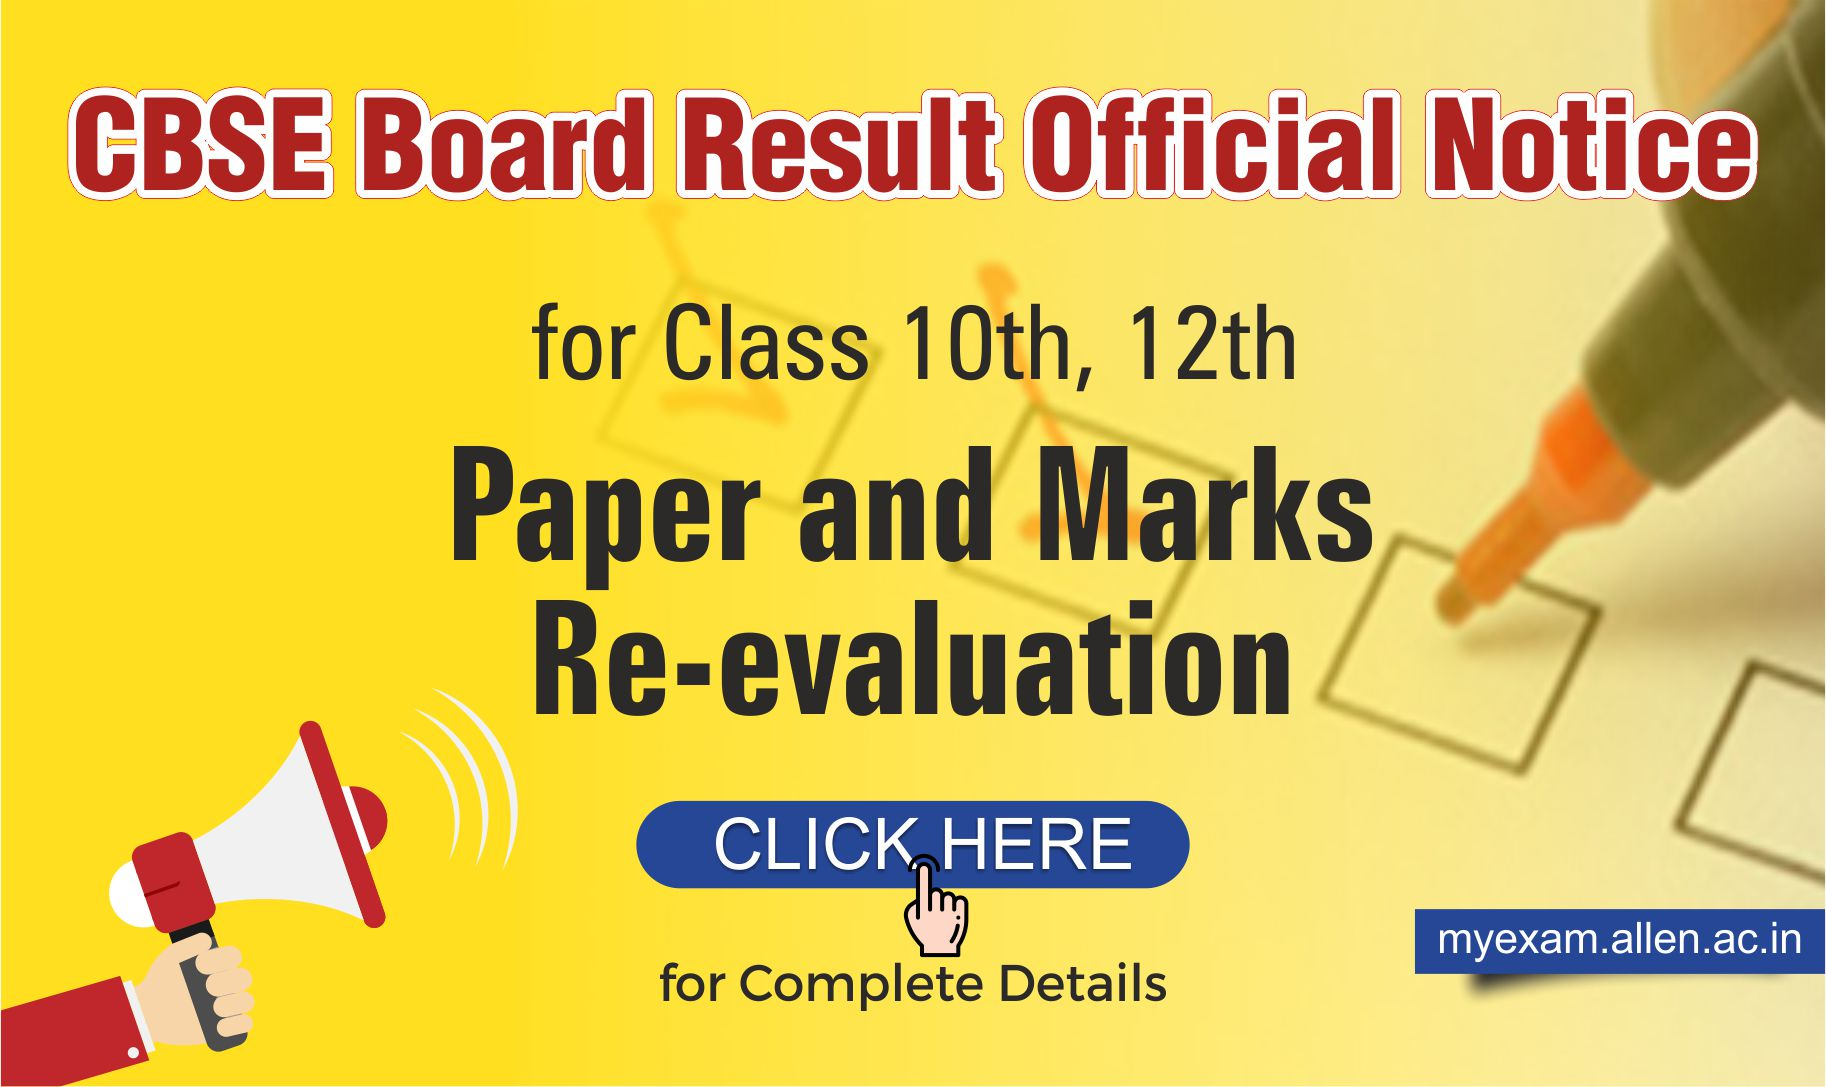 official notice for Revaluation of Class 10th & 12th Examination Marks 2019